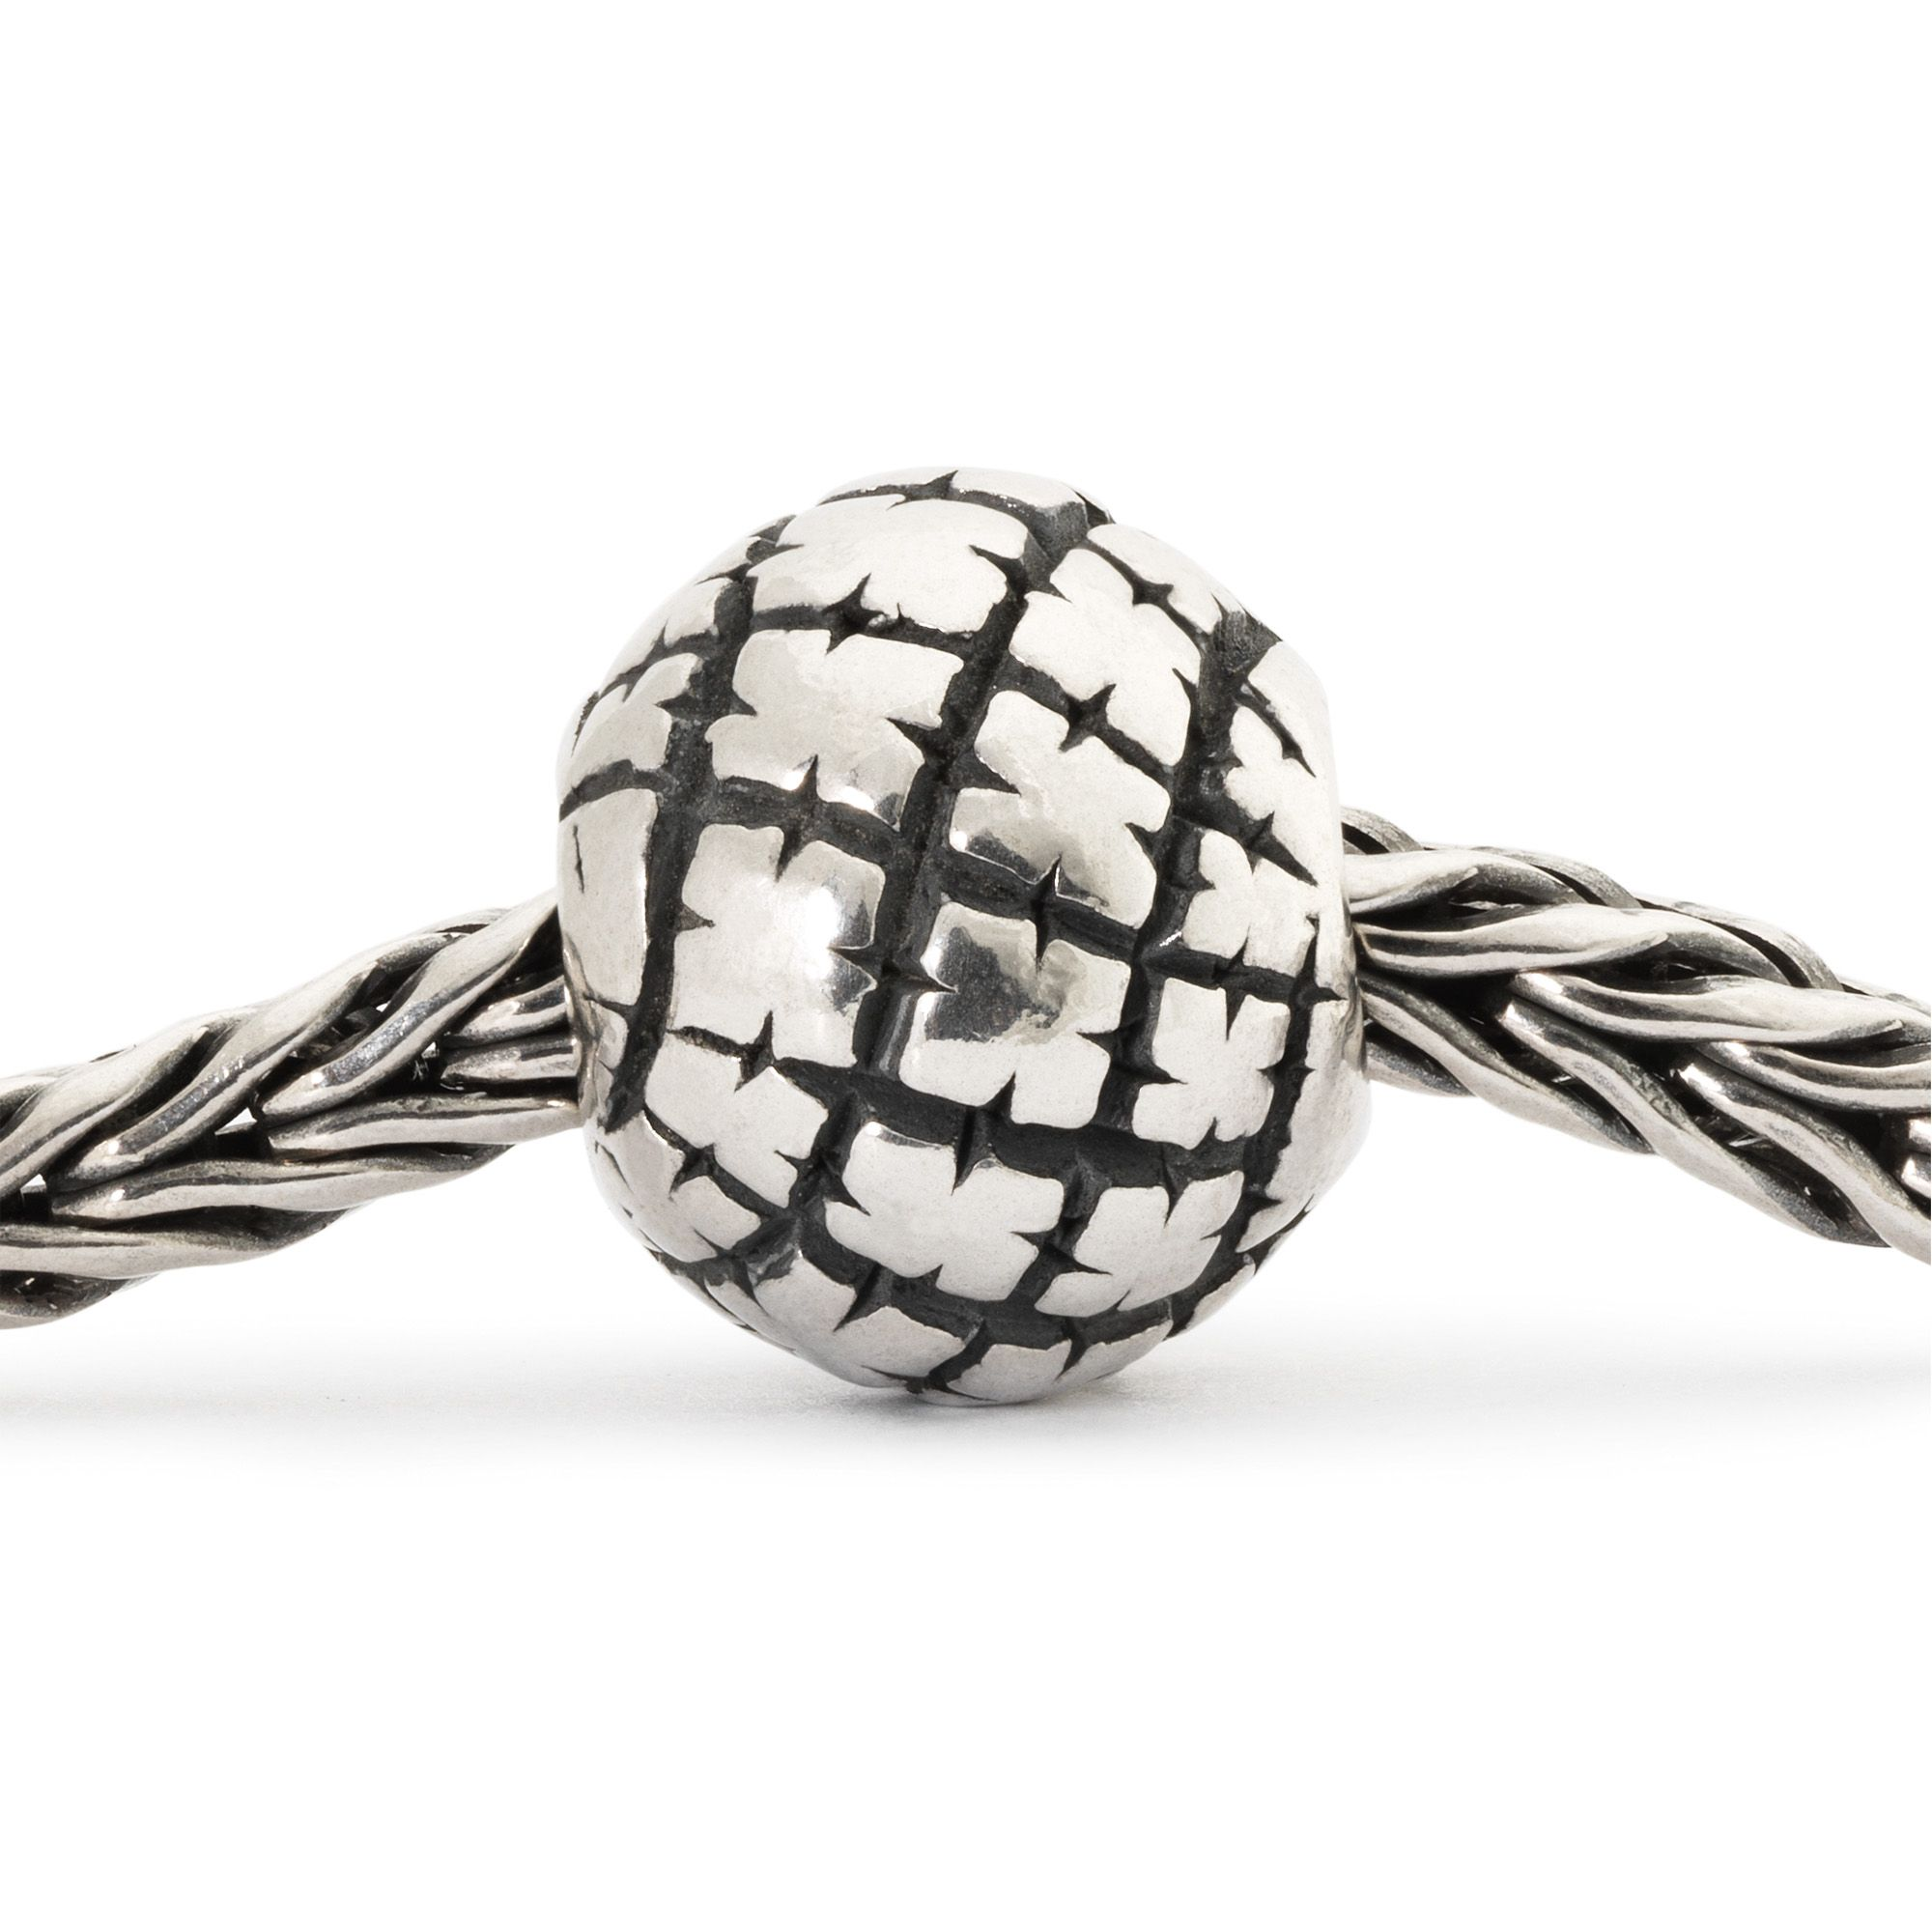 Nomad sterling silver charm bead